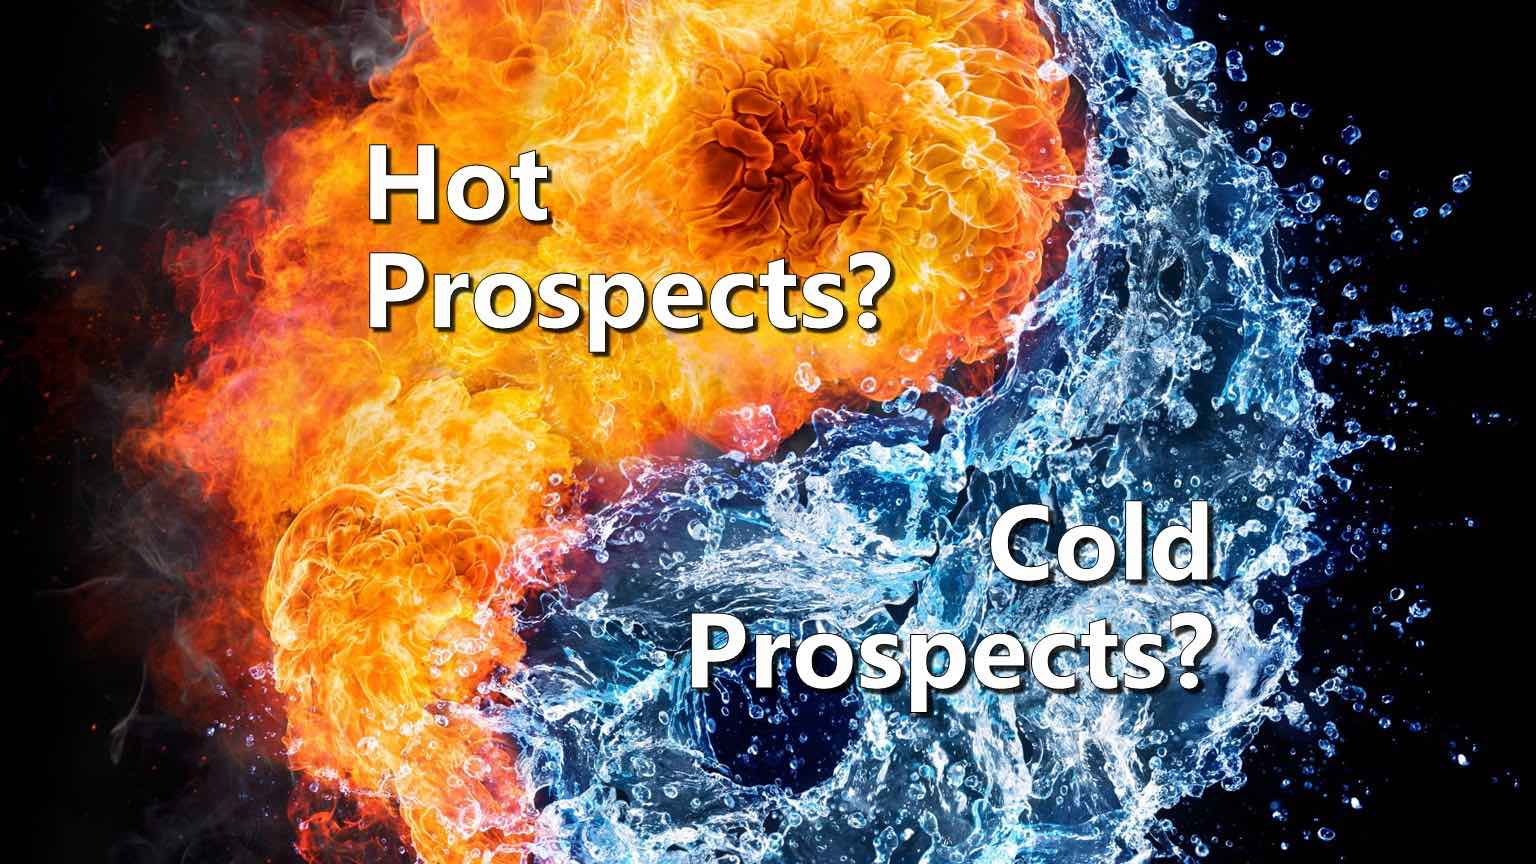 Why do hot prospects turn cold?